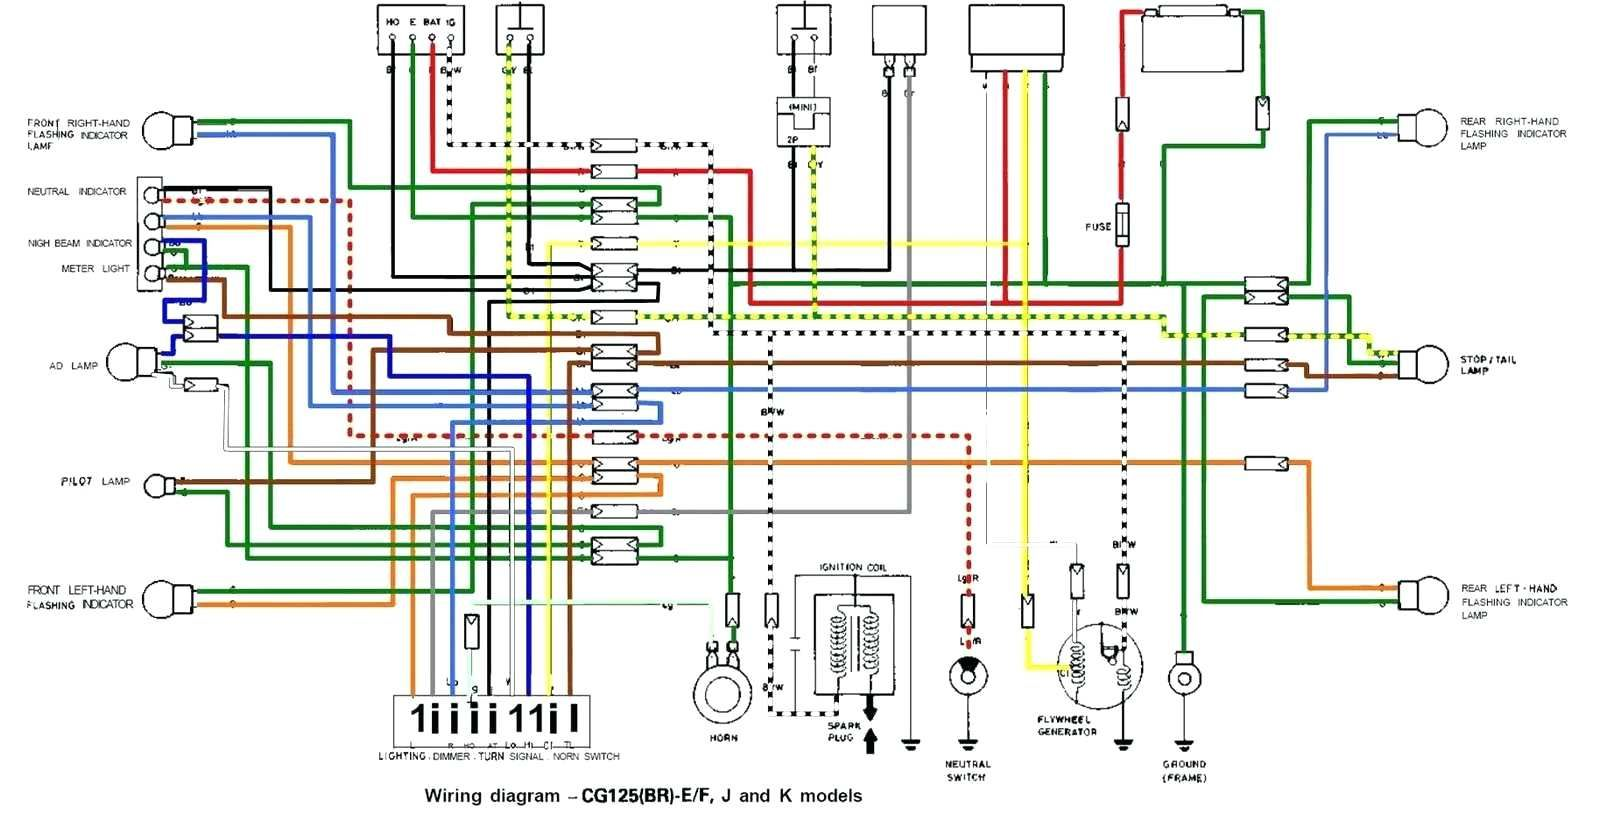 Rusi Motorcycle Wiring Diagram | disrespect1st.com on